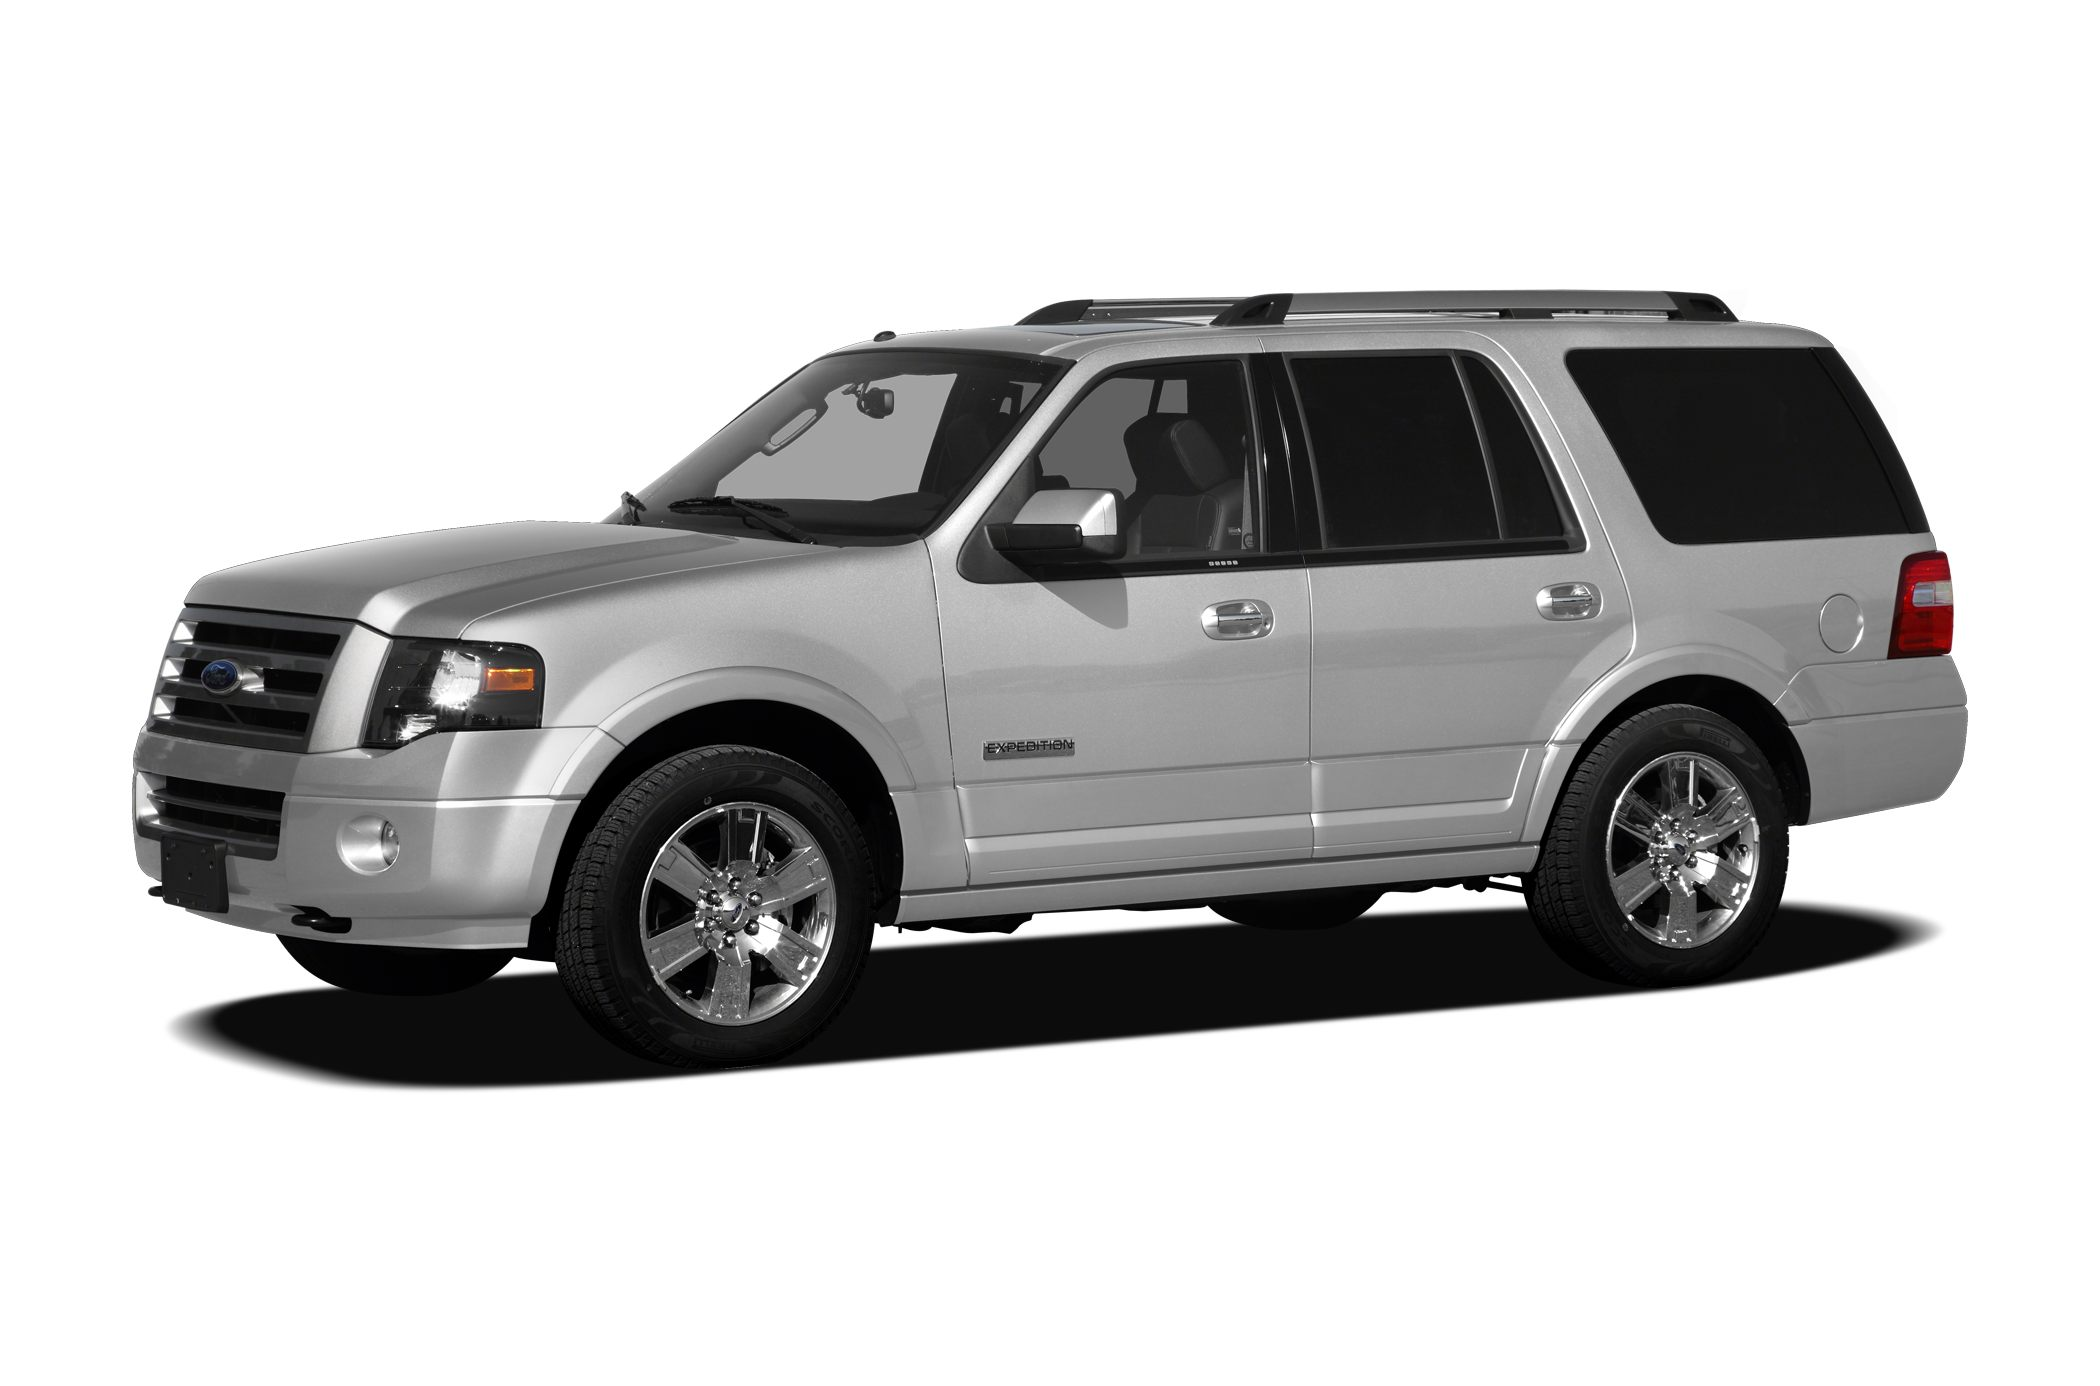 CAC20FOS301C0101 Cool Review About 2000 ford Expedition Mpg